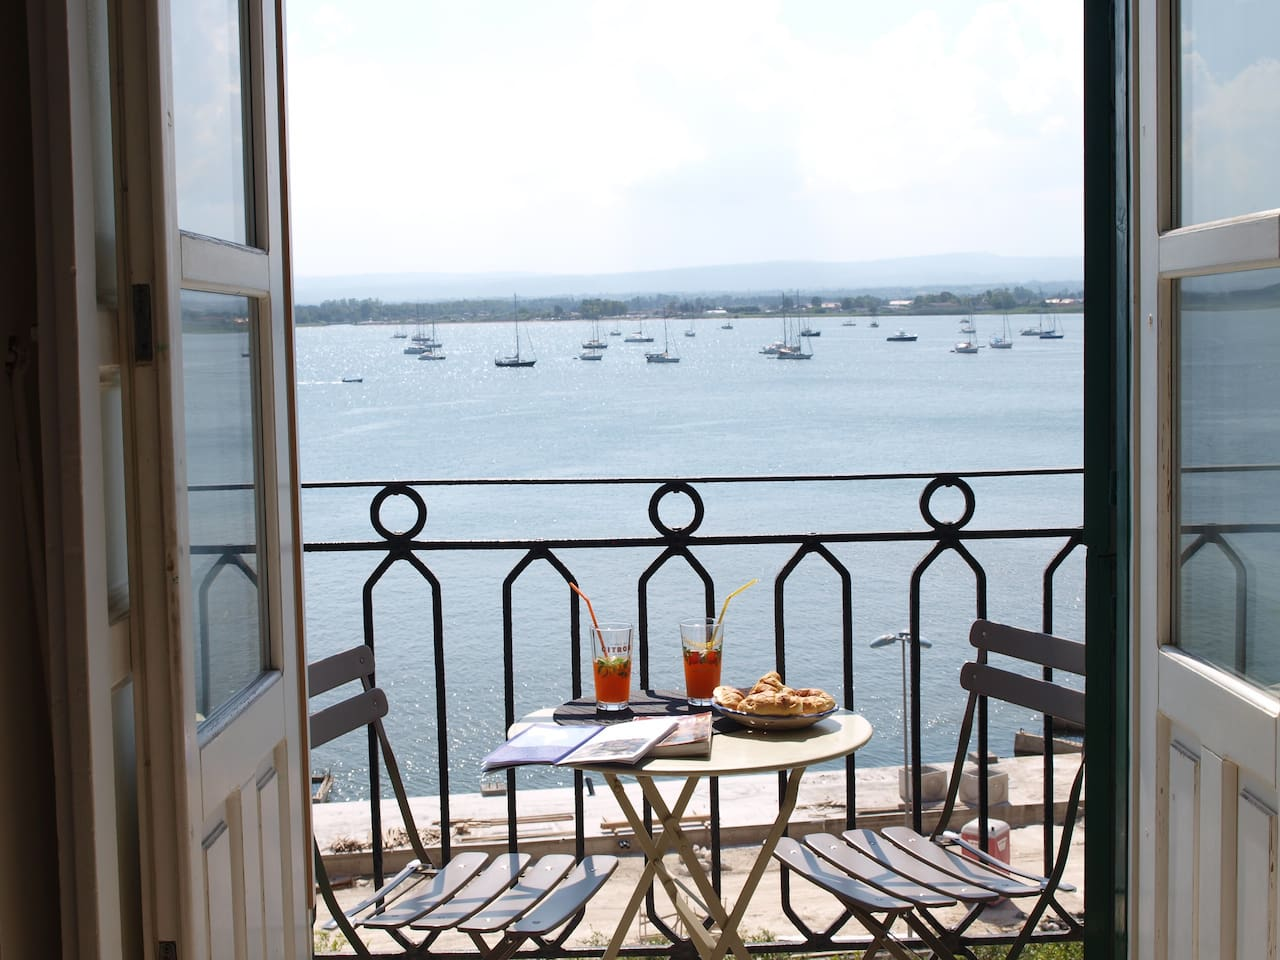 Enjoy this wonderful view from the balcony!